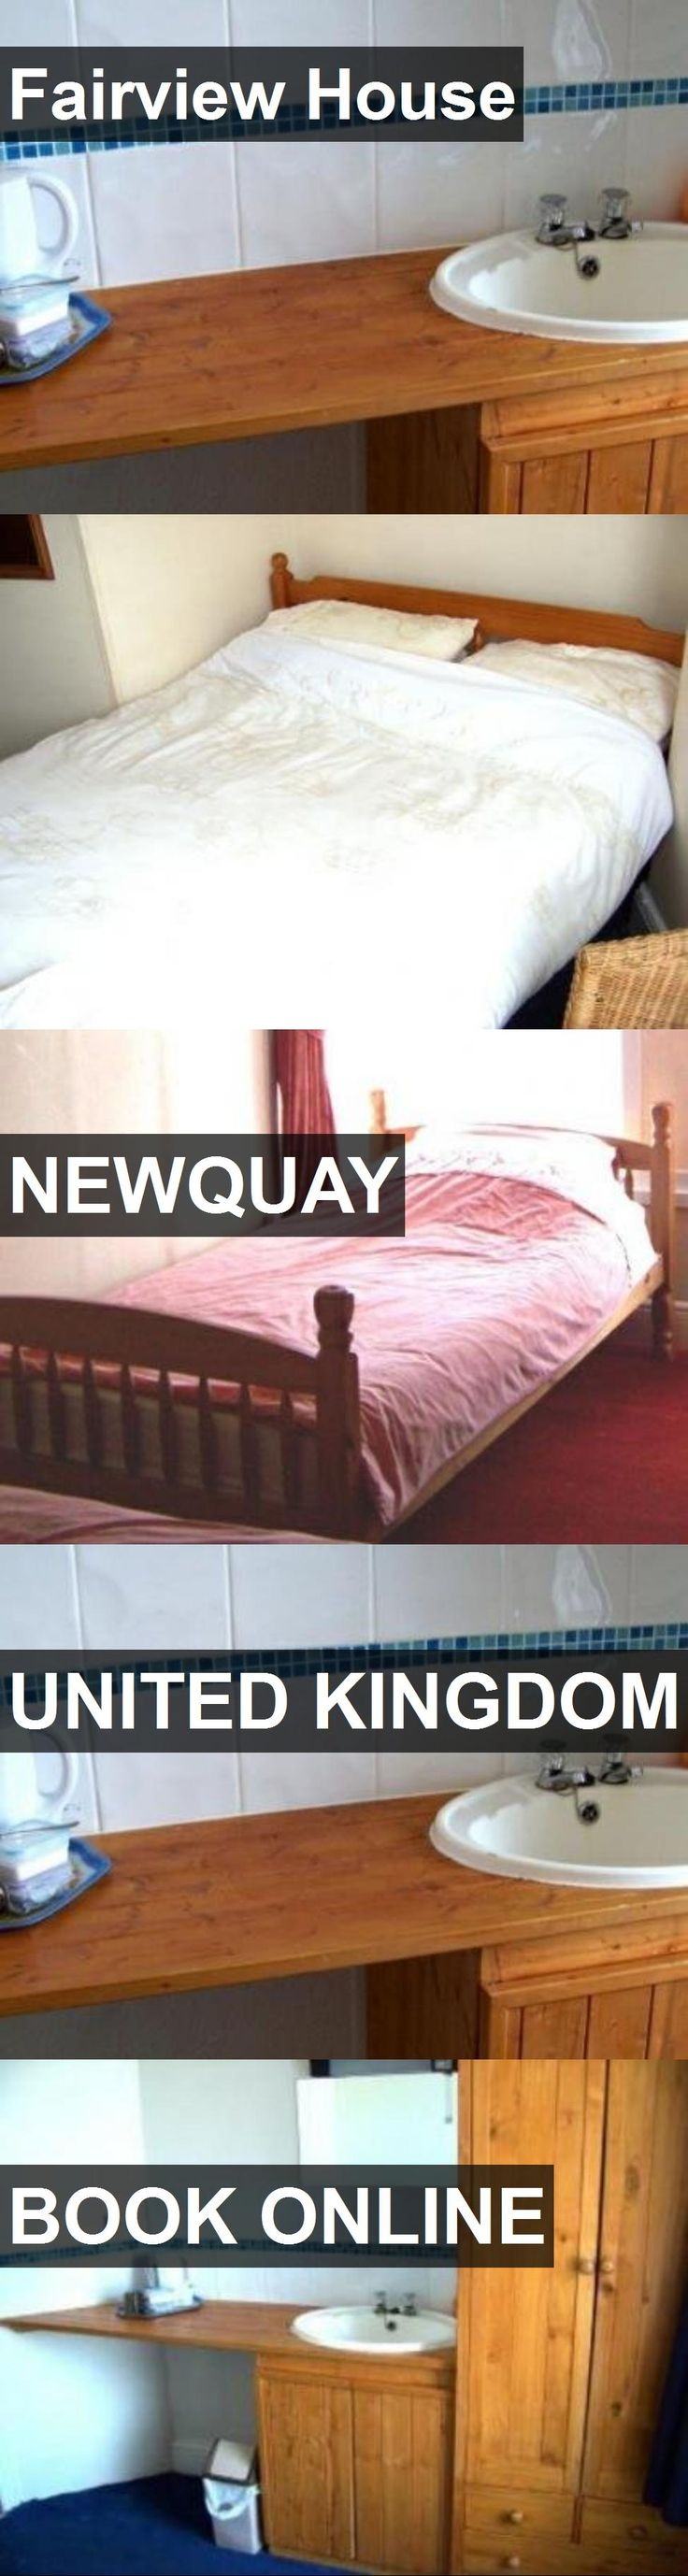 Hotel Fairview House in Newquay, United Kingdom. For more information, photos, reviews and best prices please follow the link. #UnitedKingdom #Newquay #travel #vacation #hotel